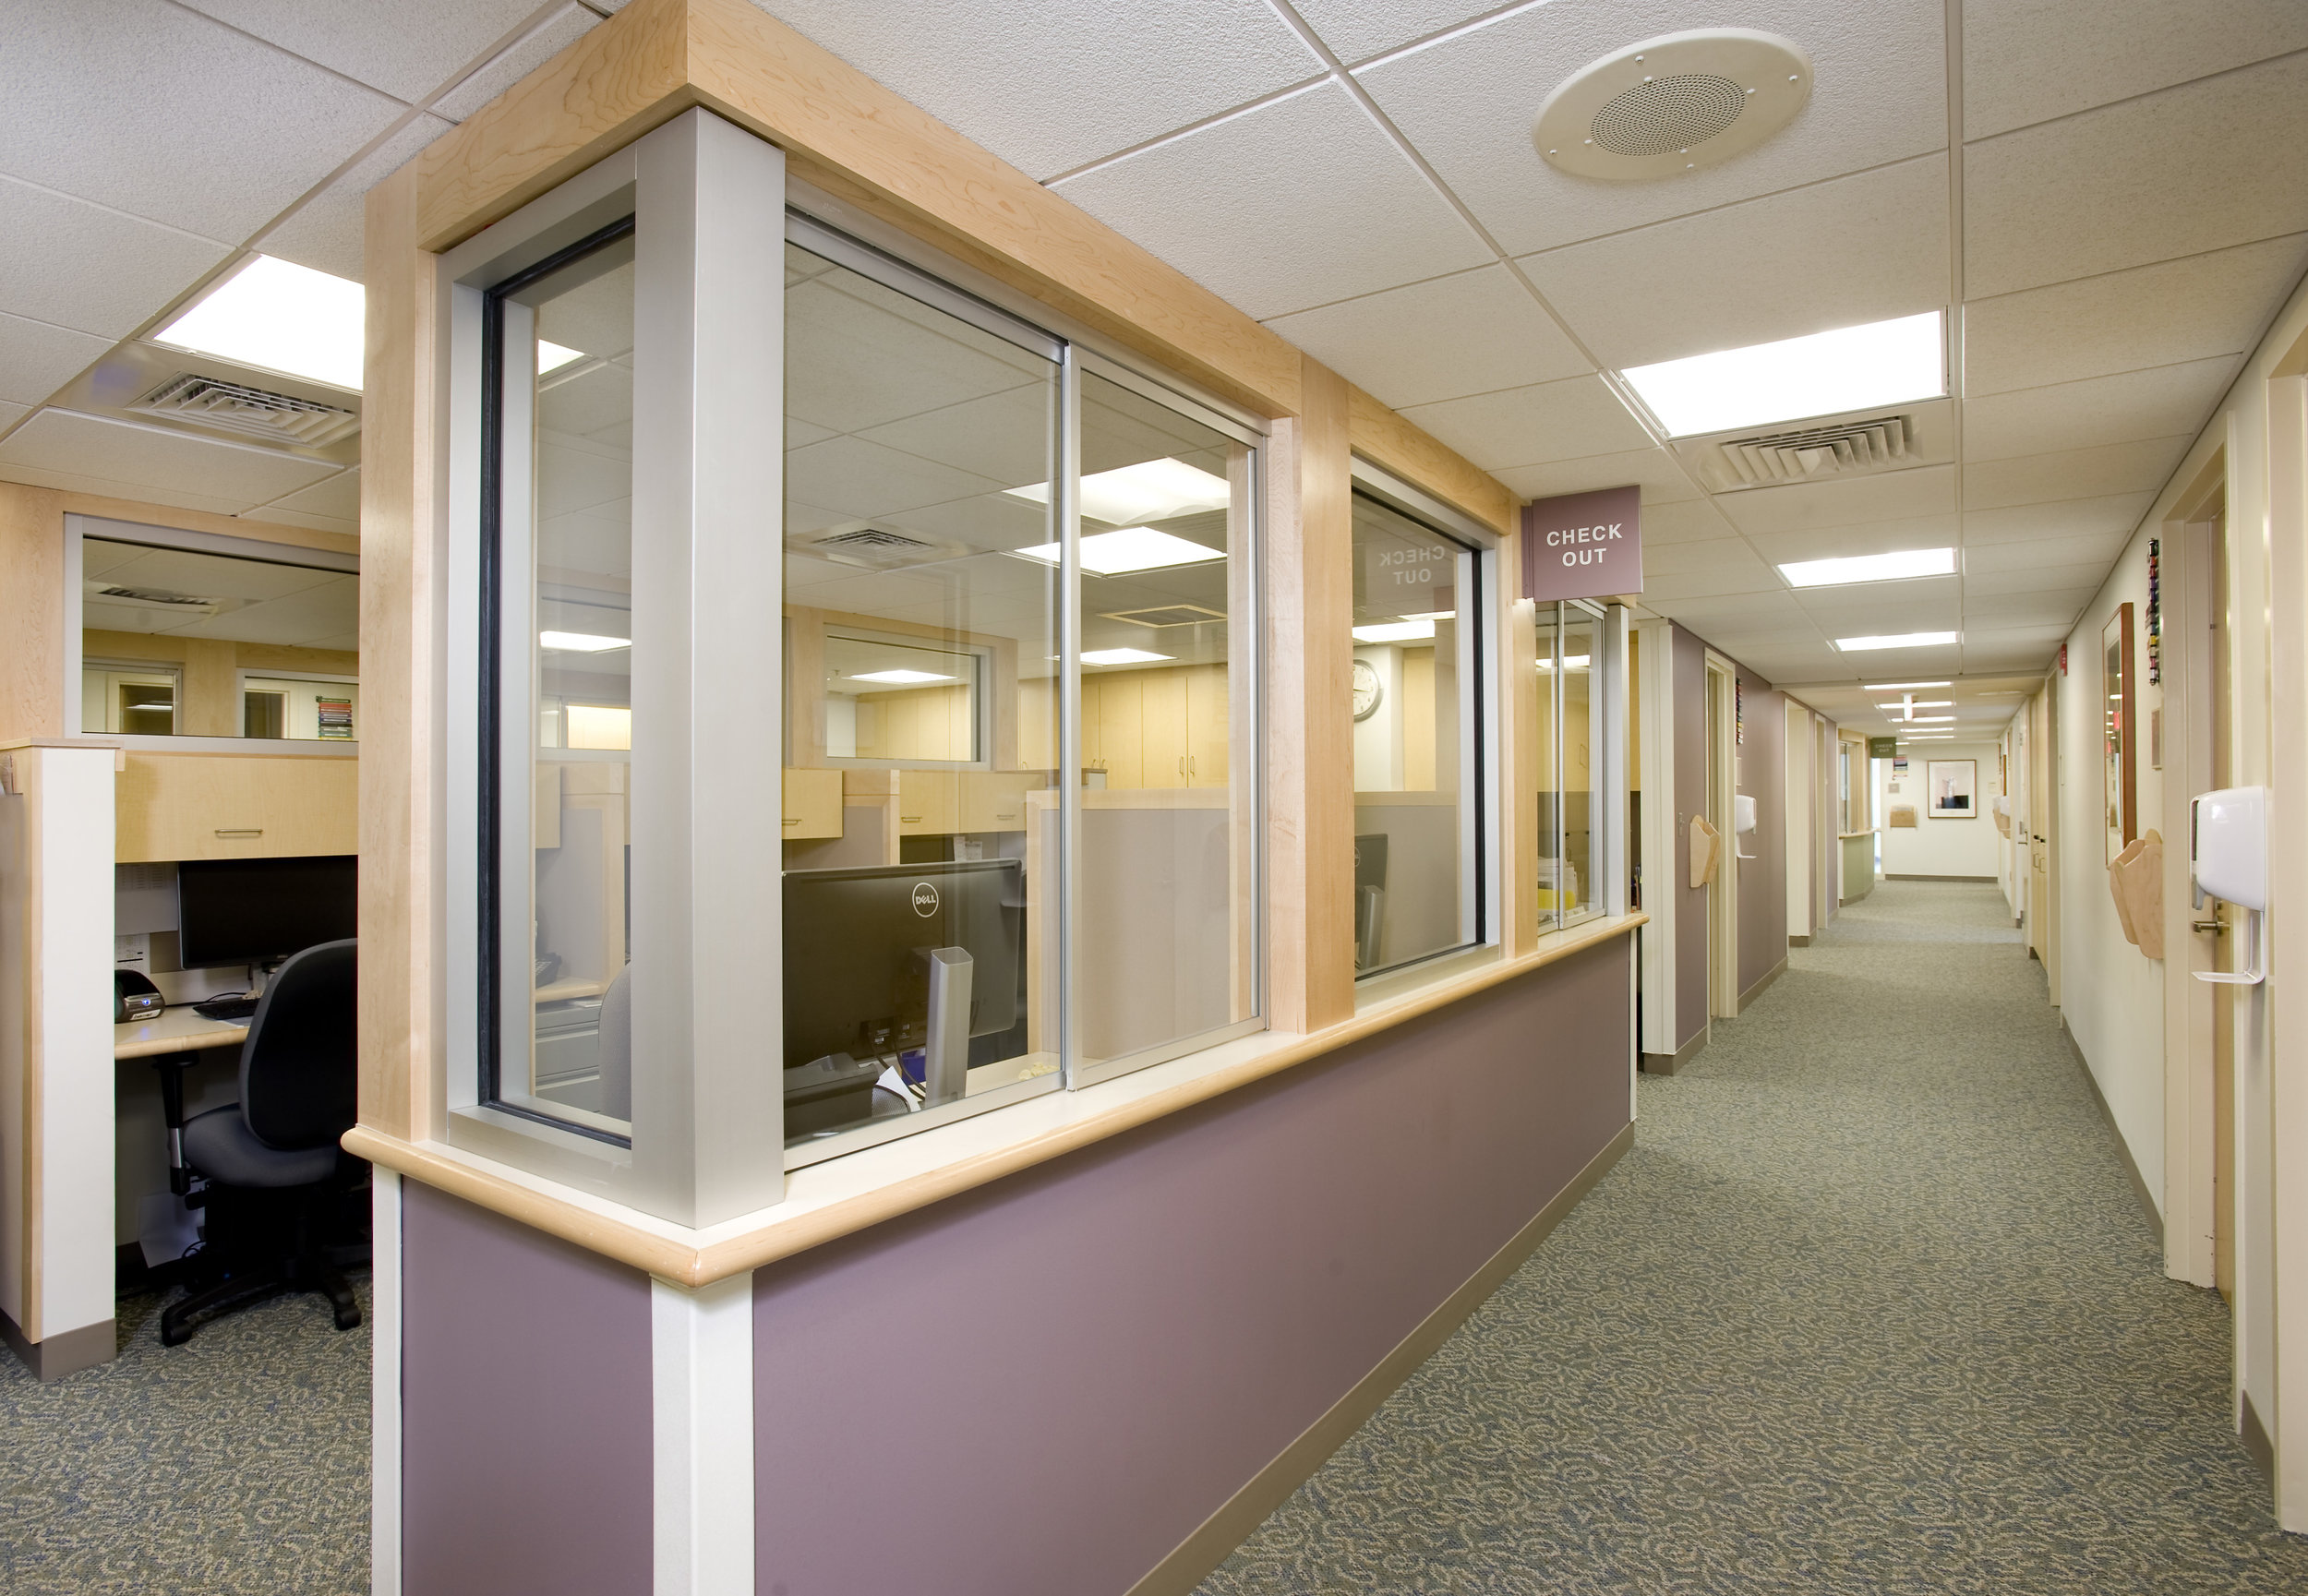 Primary-Care-Center-Check_Out-2-HDS-Architecture.jpg